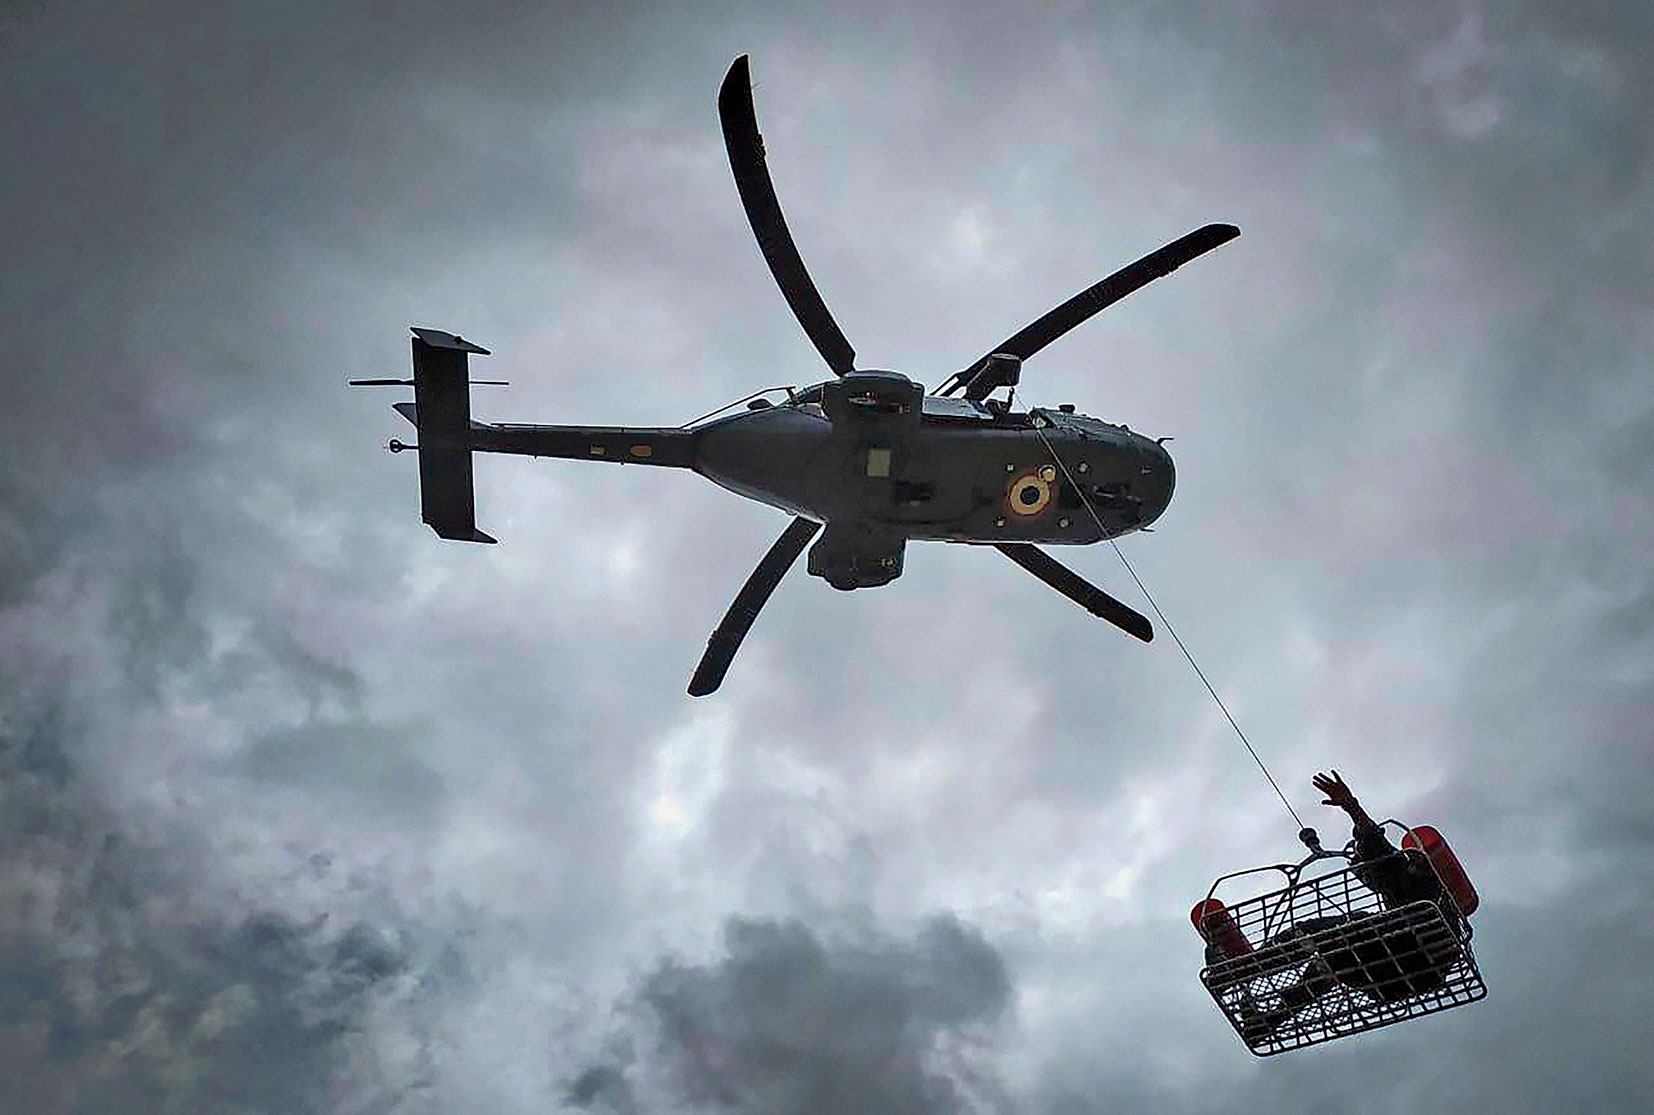 A flood victim being hauled into a navy helicopter from a flood-hit area in Maharashtra on Saturday. Kolhapur and Sangli are in the grip of a devastating flood.